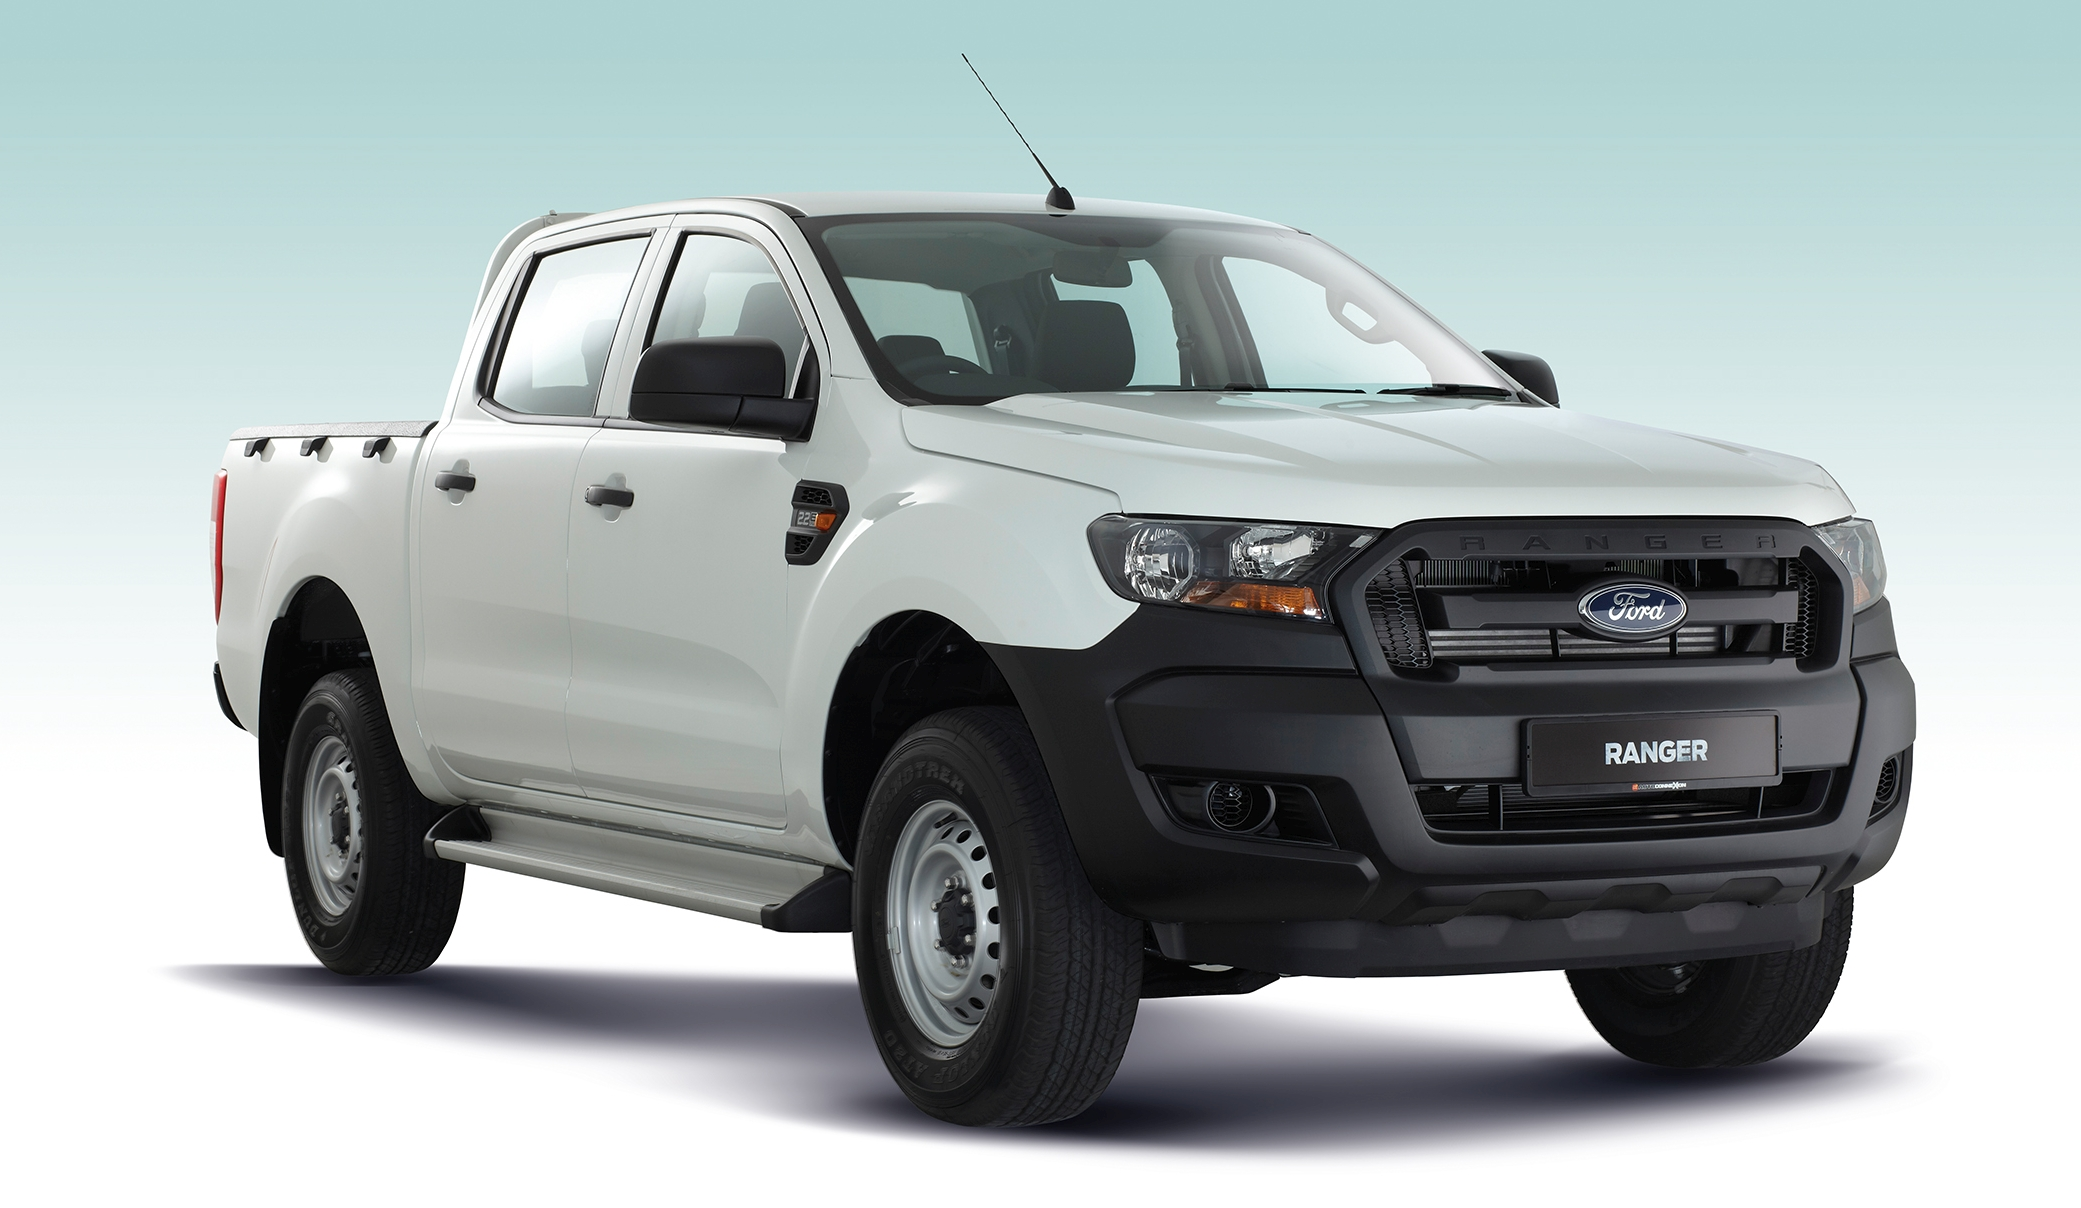 ford ranger xl standard debuts in malaysia rm84k. Black Bedroom Furniture Sets. Home Design Ideas